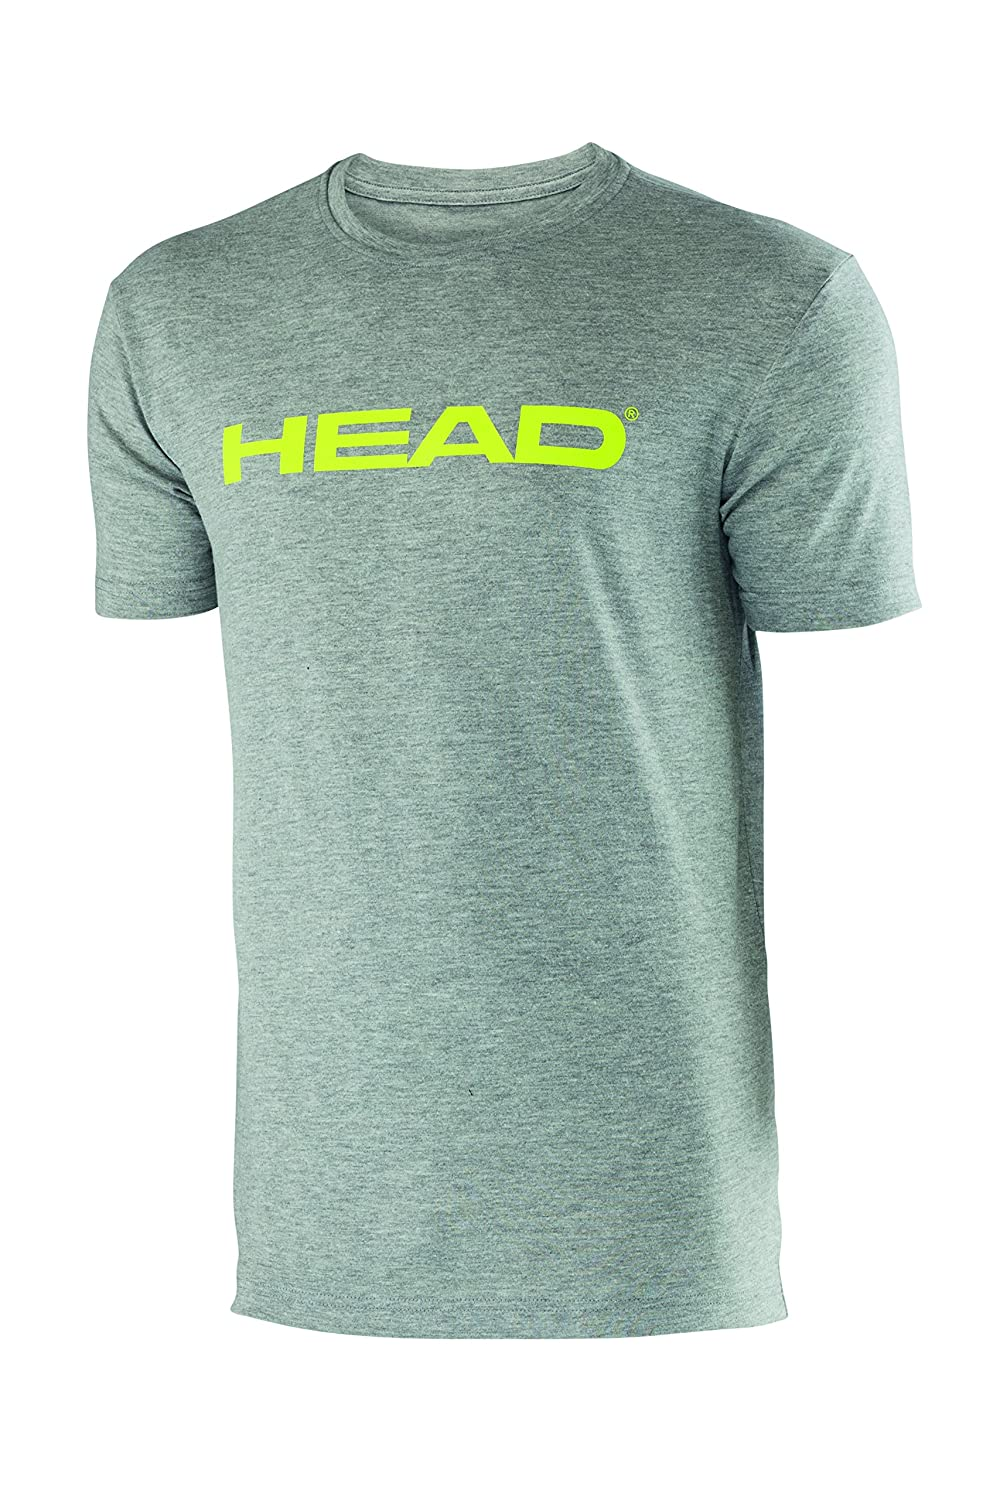 Head Ivan - Camiseta de: Amazon.es: Ropa y accesorios